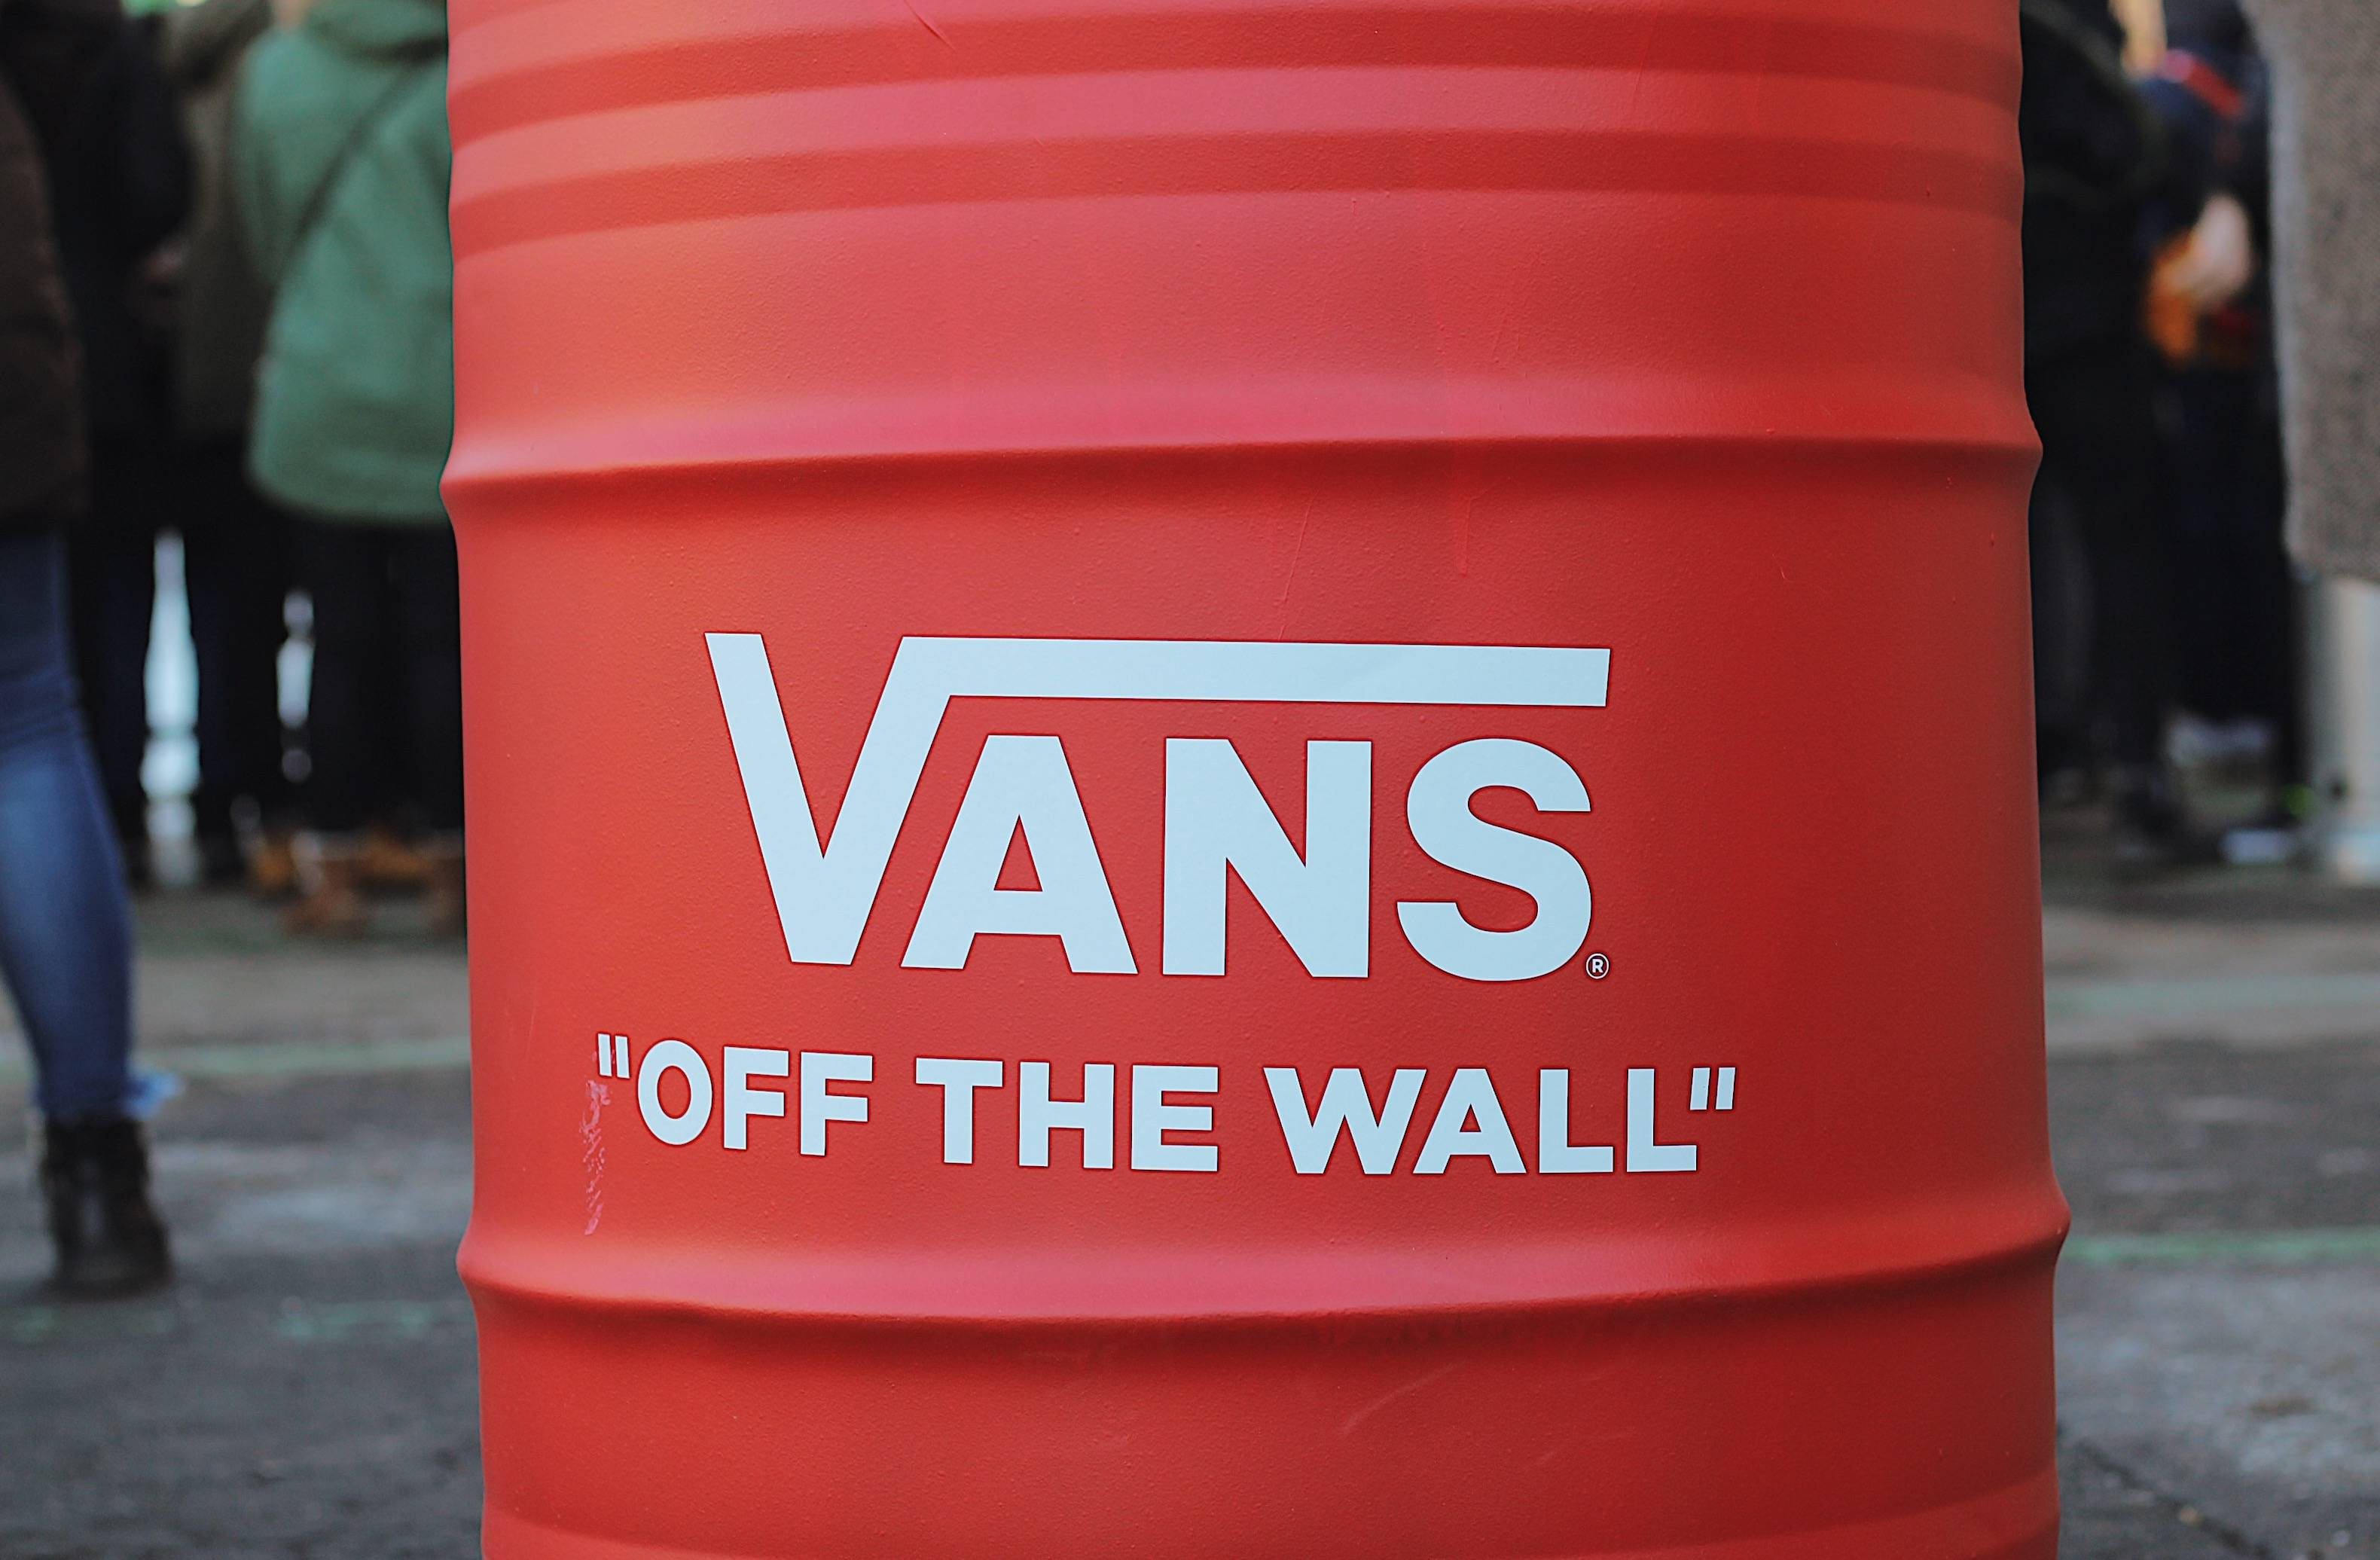 Vans off the wall city session - Stone Forest